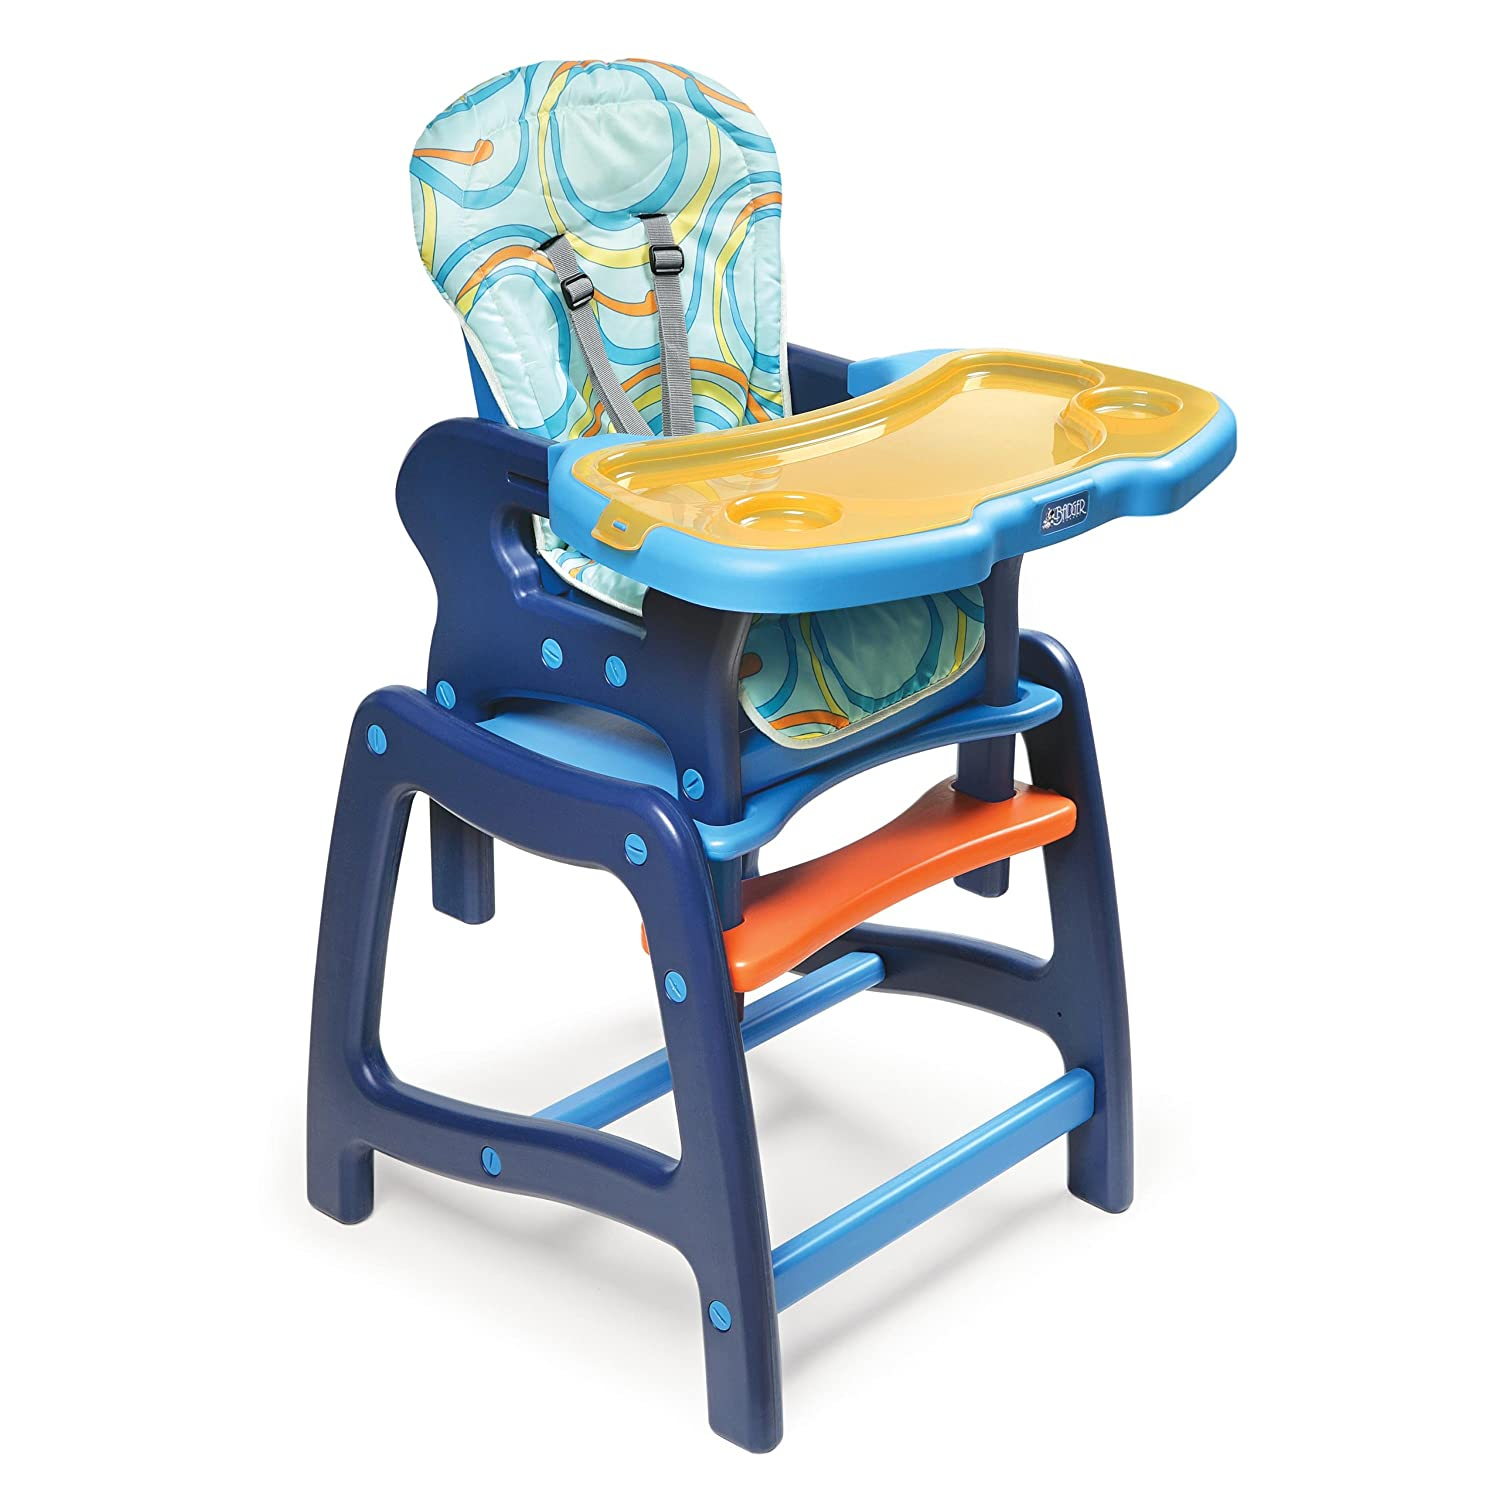 Toddler Chairs Top 10 Best Baby Adjustable High Chairs 2016 2017 On Flipboard